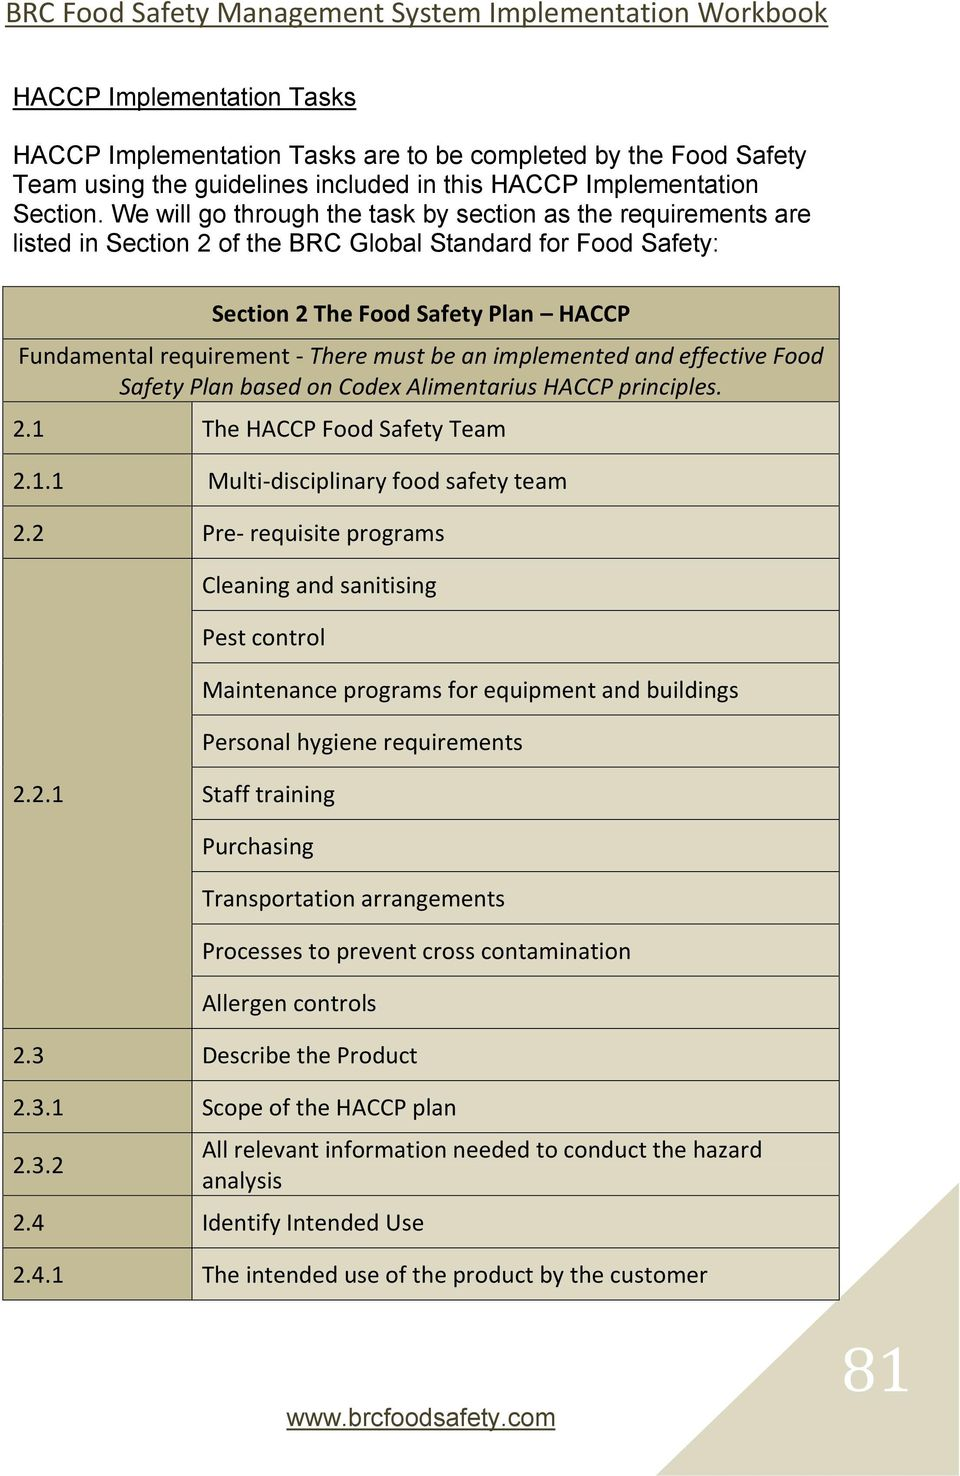 must be an implemented and effective Food Safety Plan based on Codex Alimentarius HACCP principles. 2.1 The HACCP Food Safety Team 2.1.1 Multi-disciplinary food safety team 2.